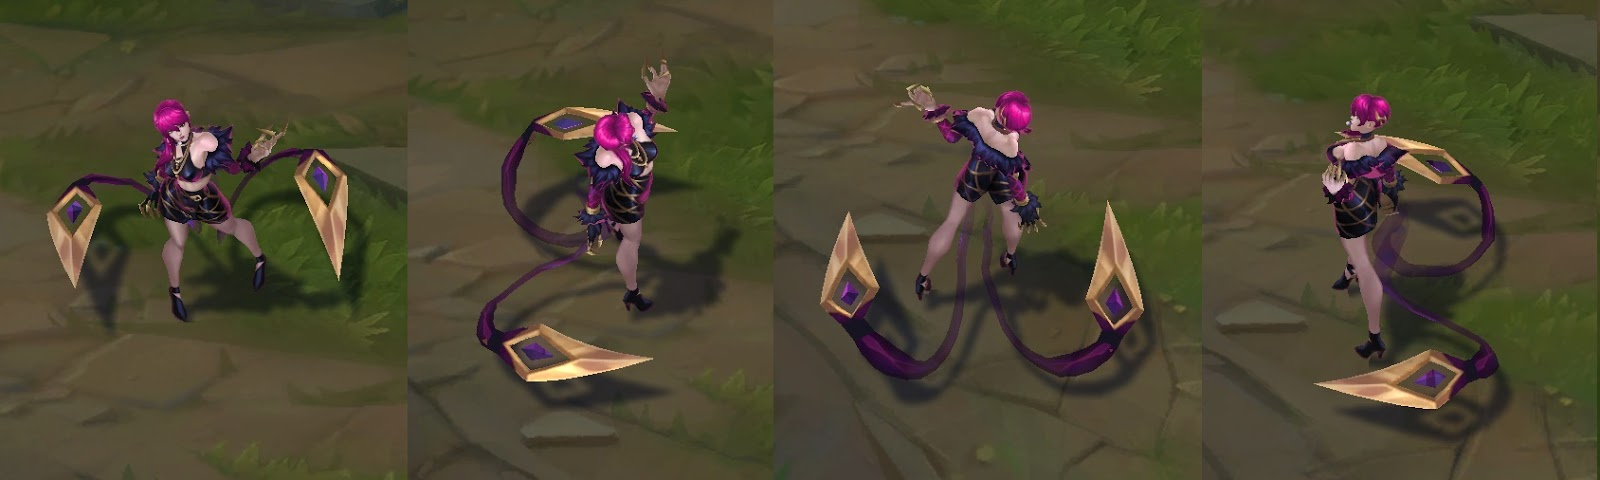 kda evelynn skin for league of legends ingame picture